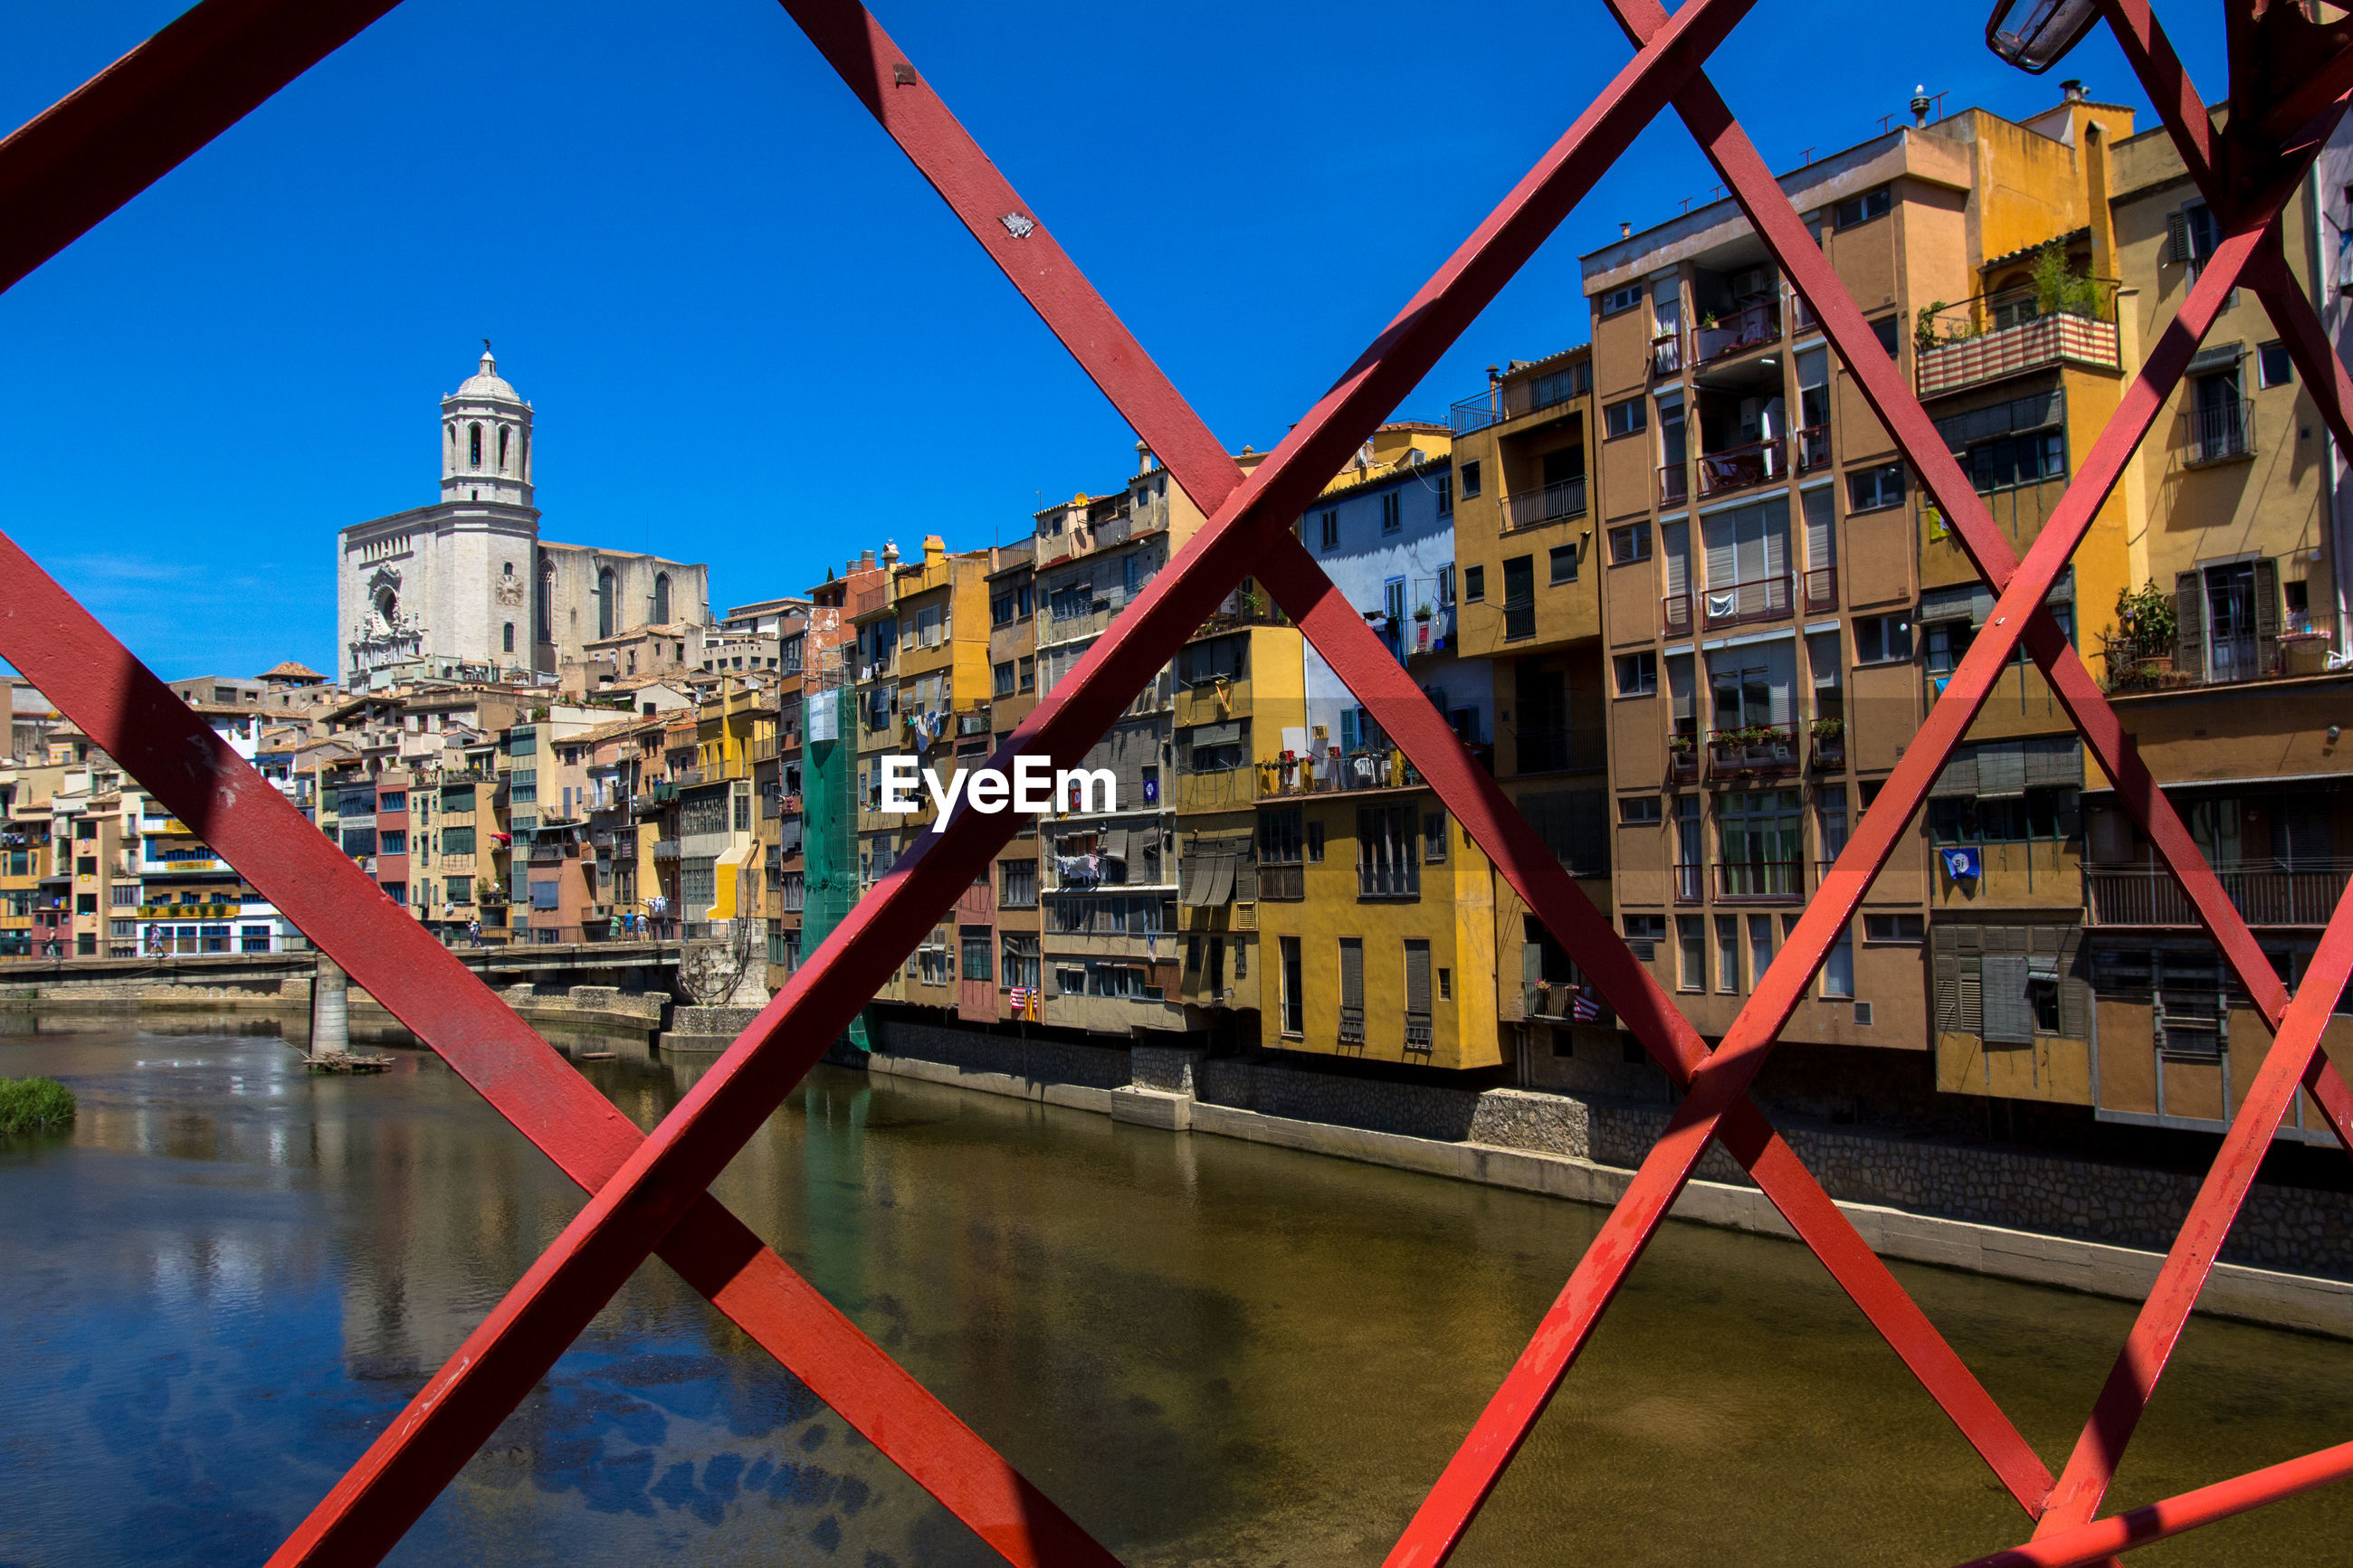 Buildings by river against clear blue sky seen through fence